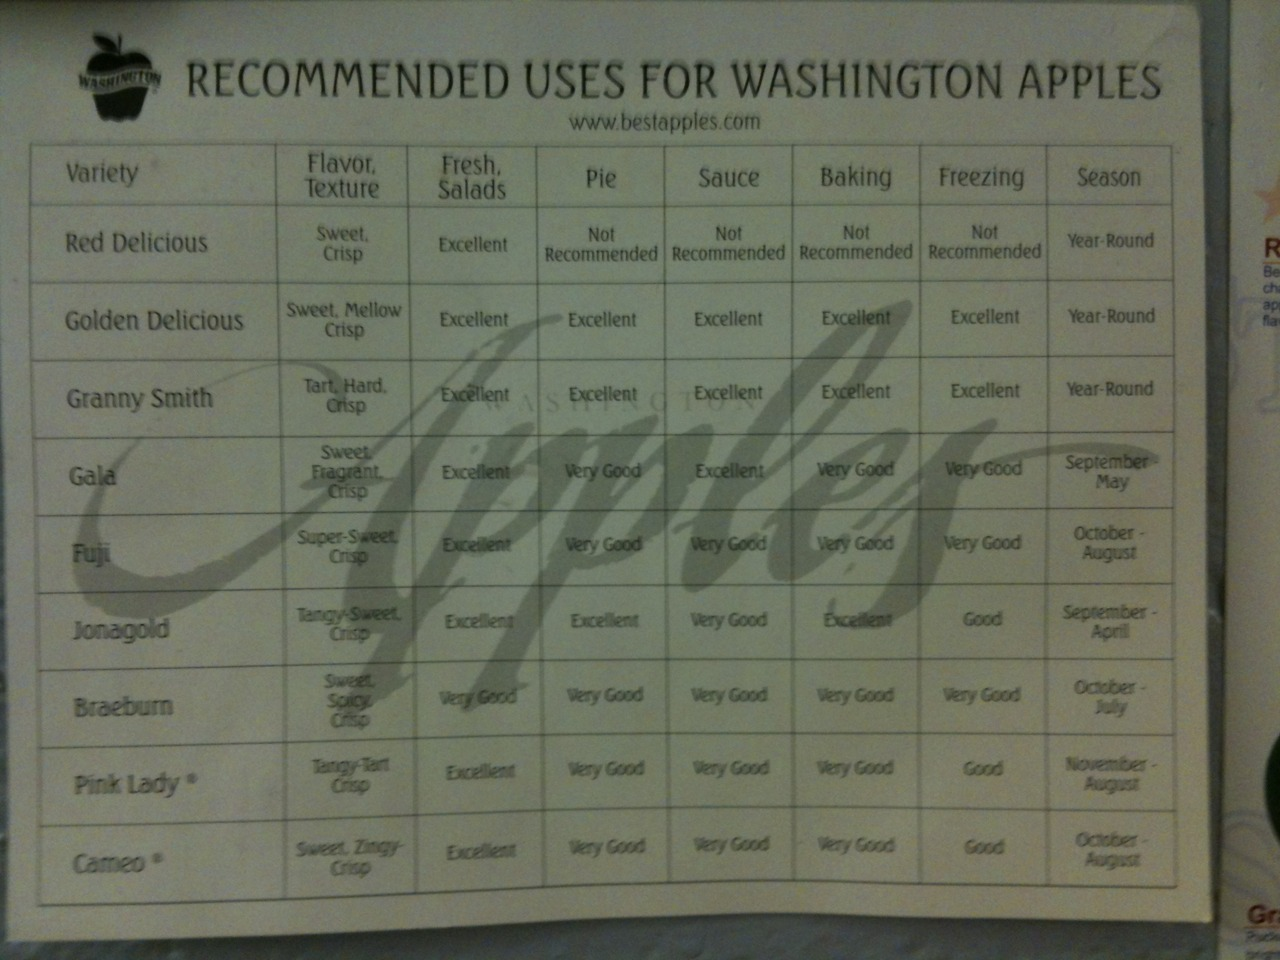 Recommended Uses for Washington Apples I want more charts like this!